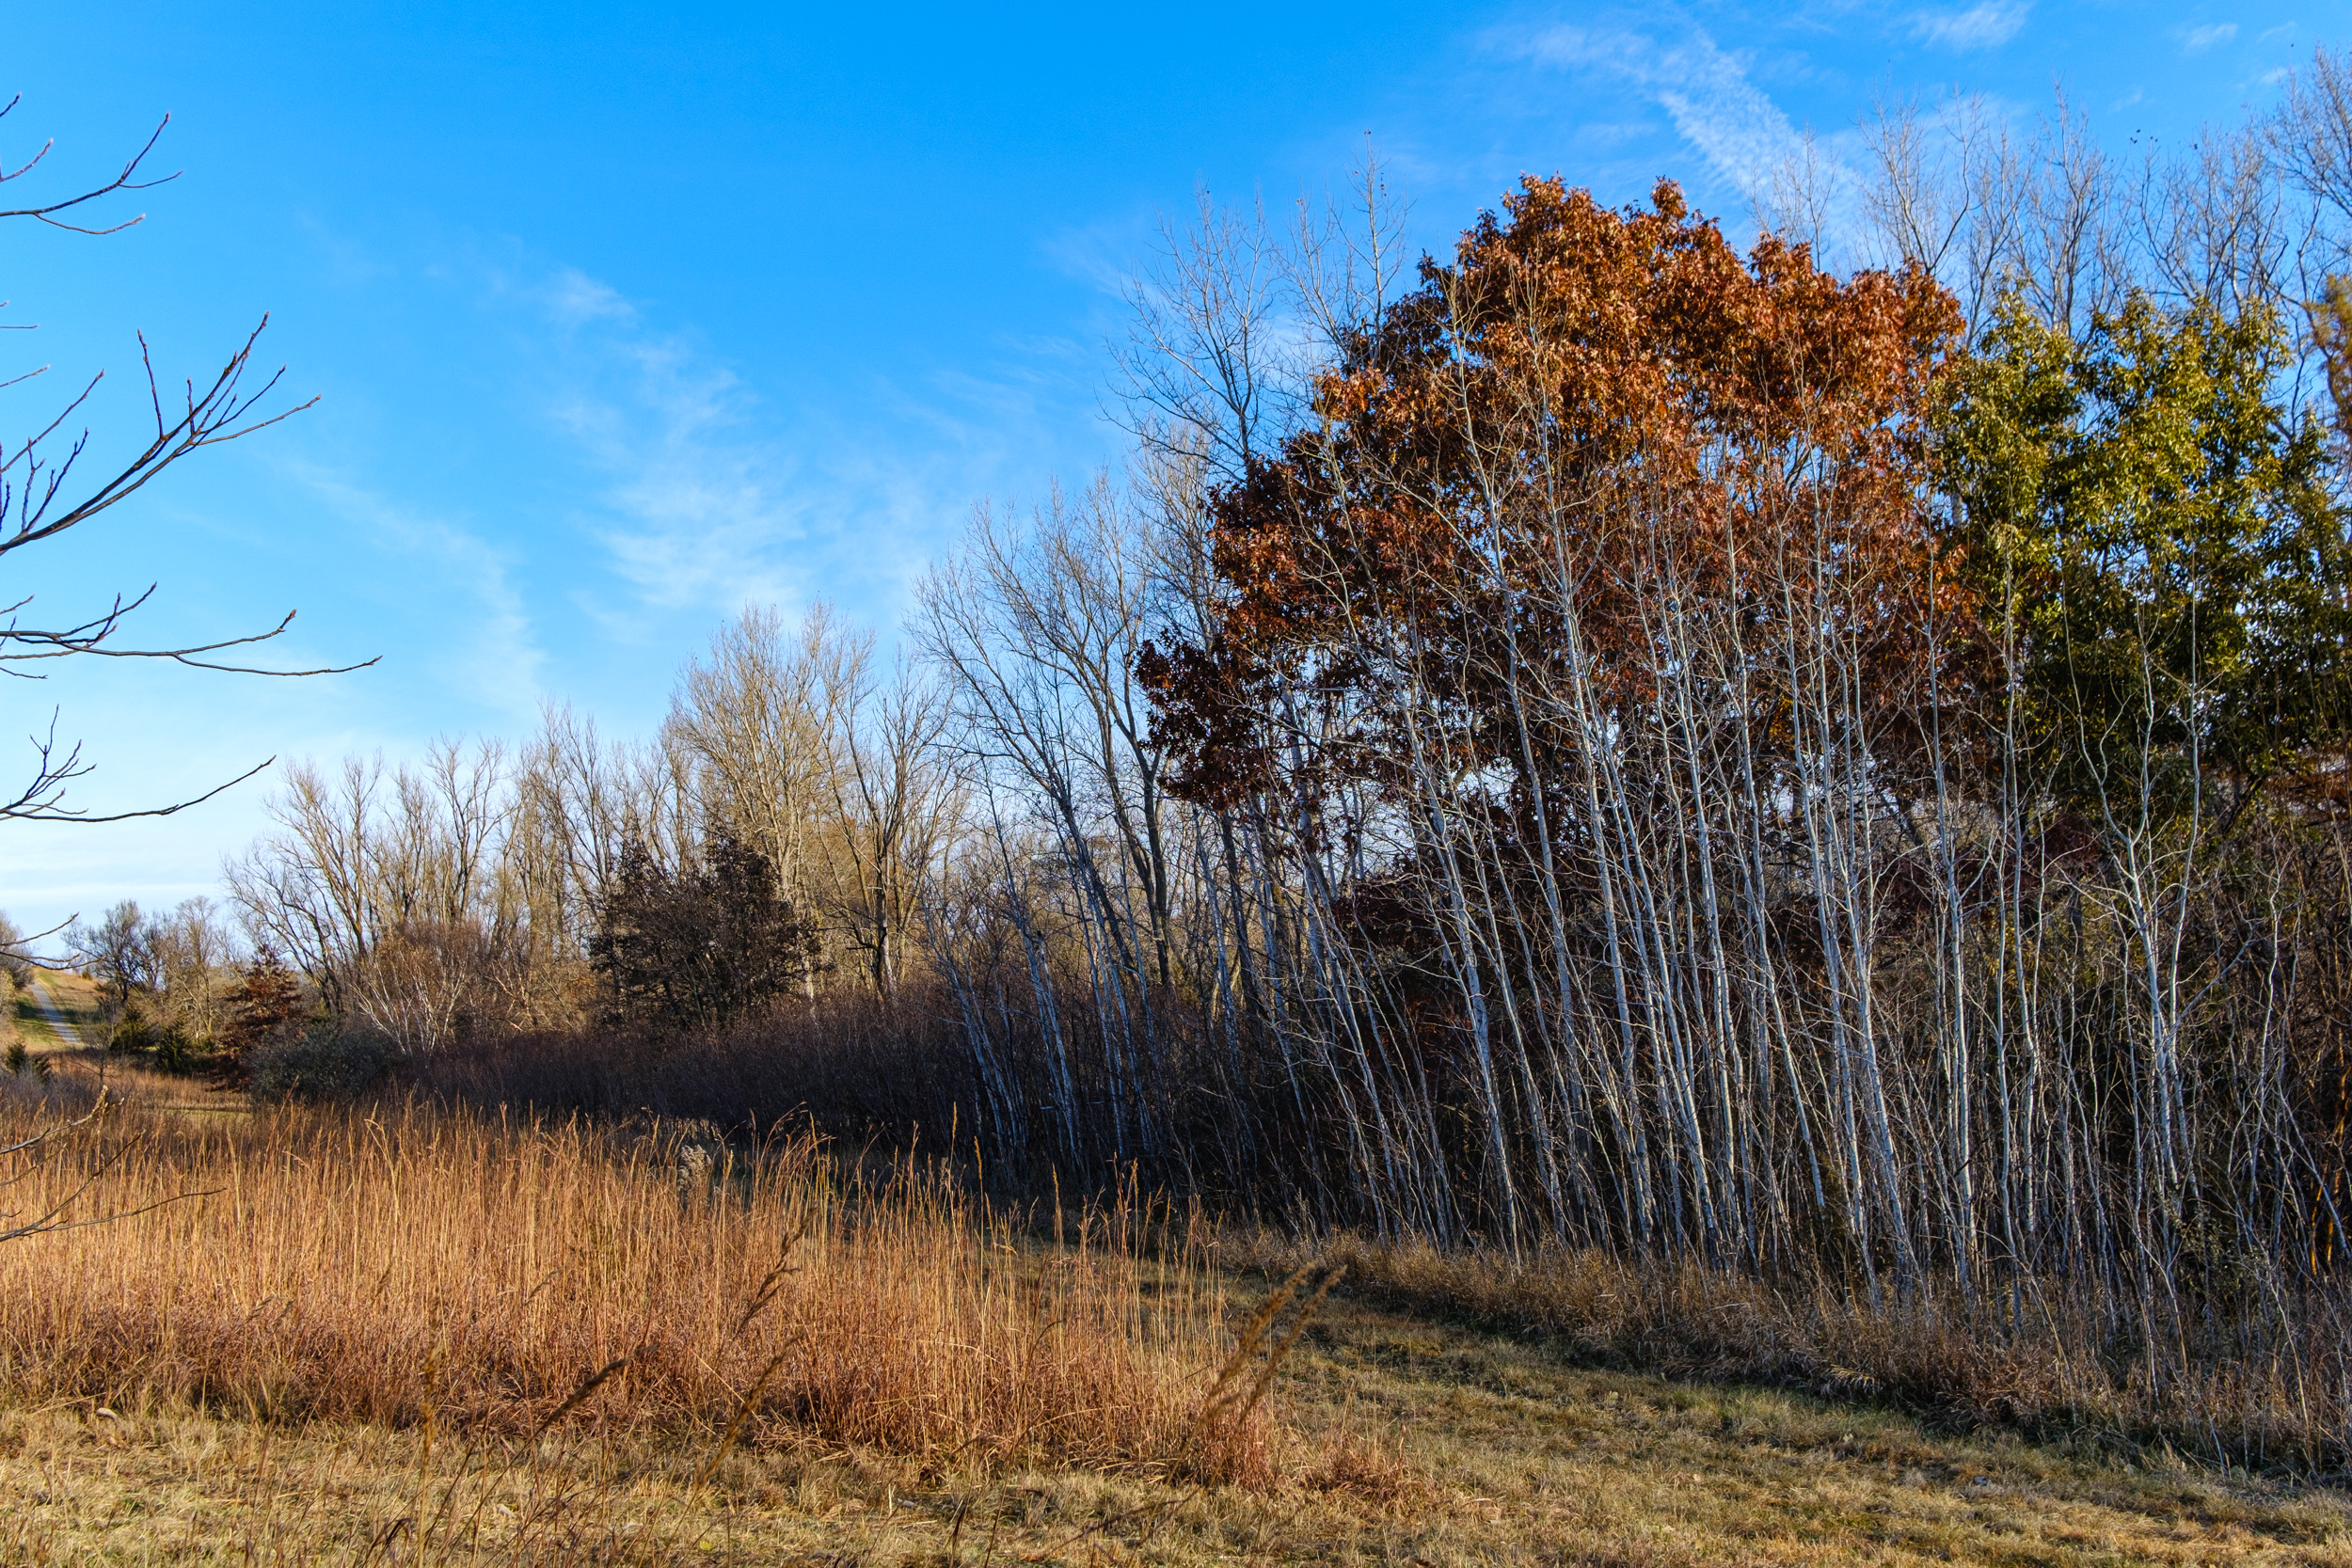 Trees and grasses along trail